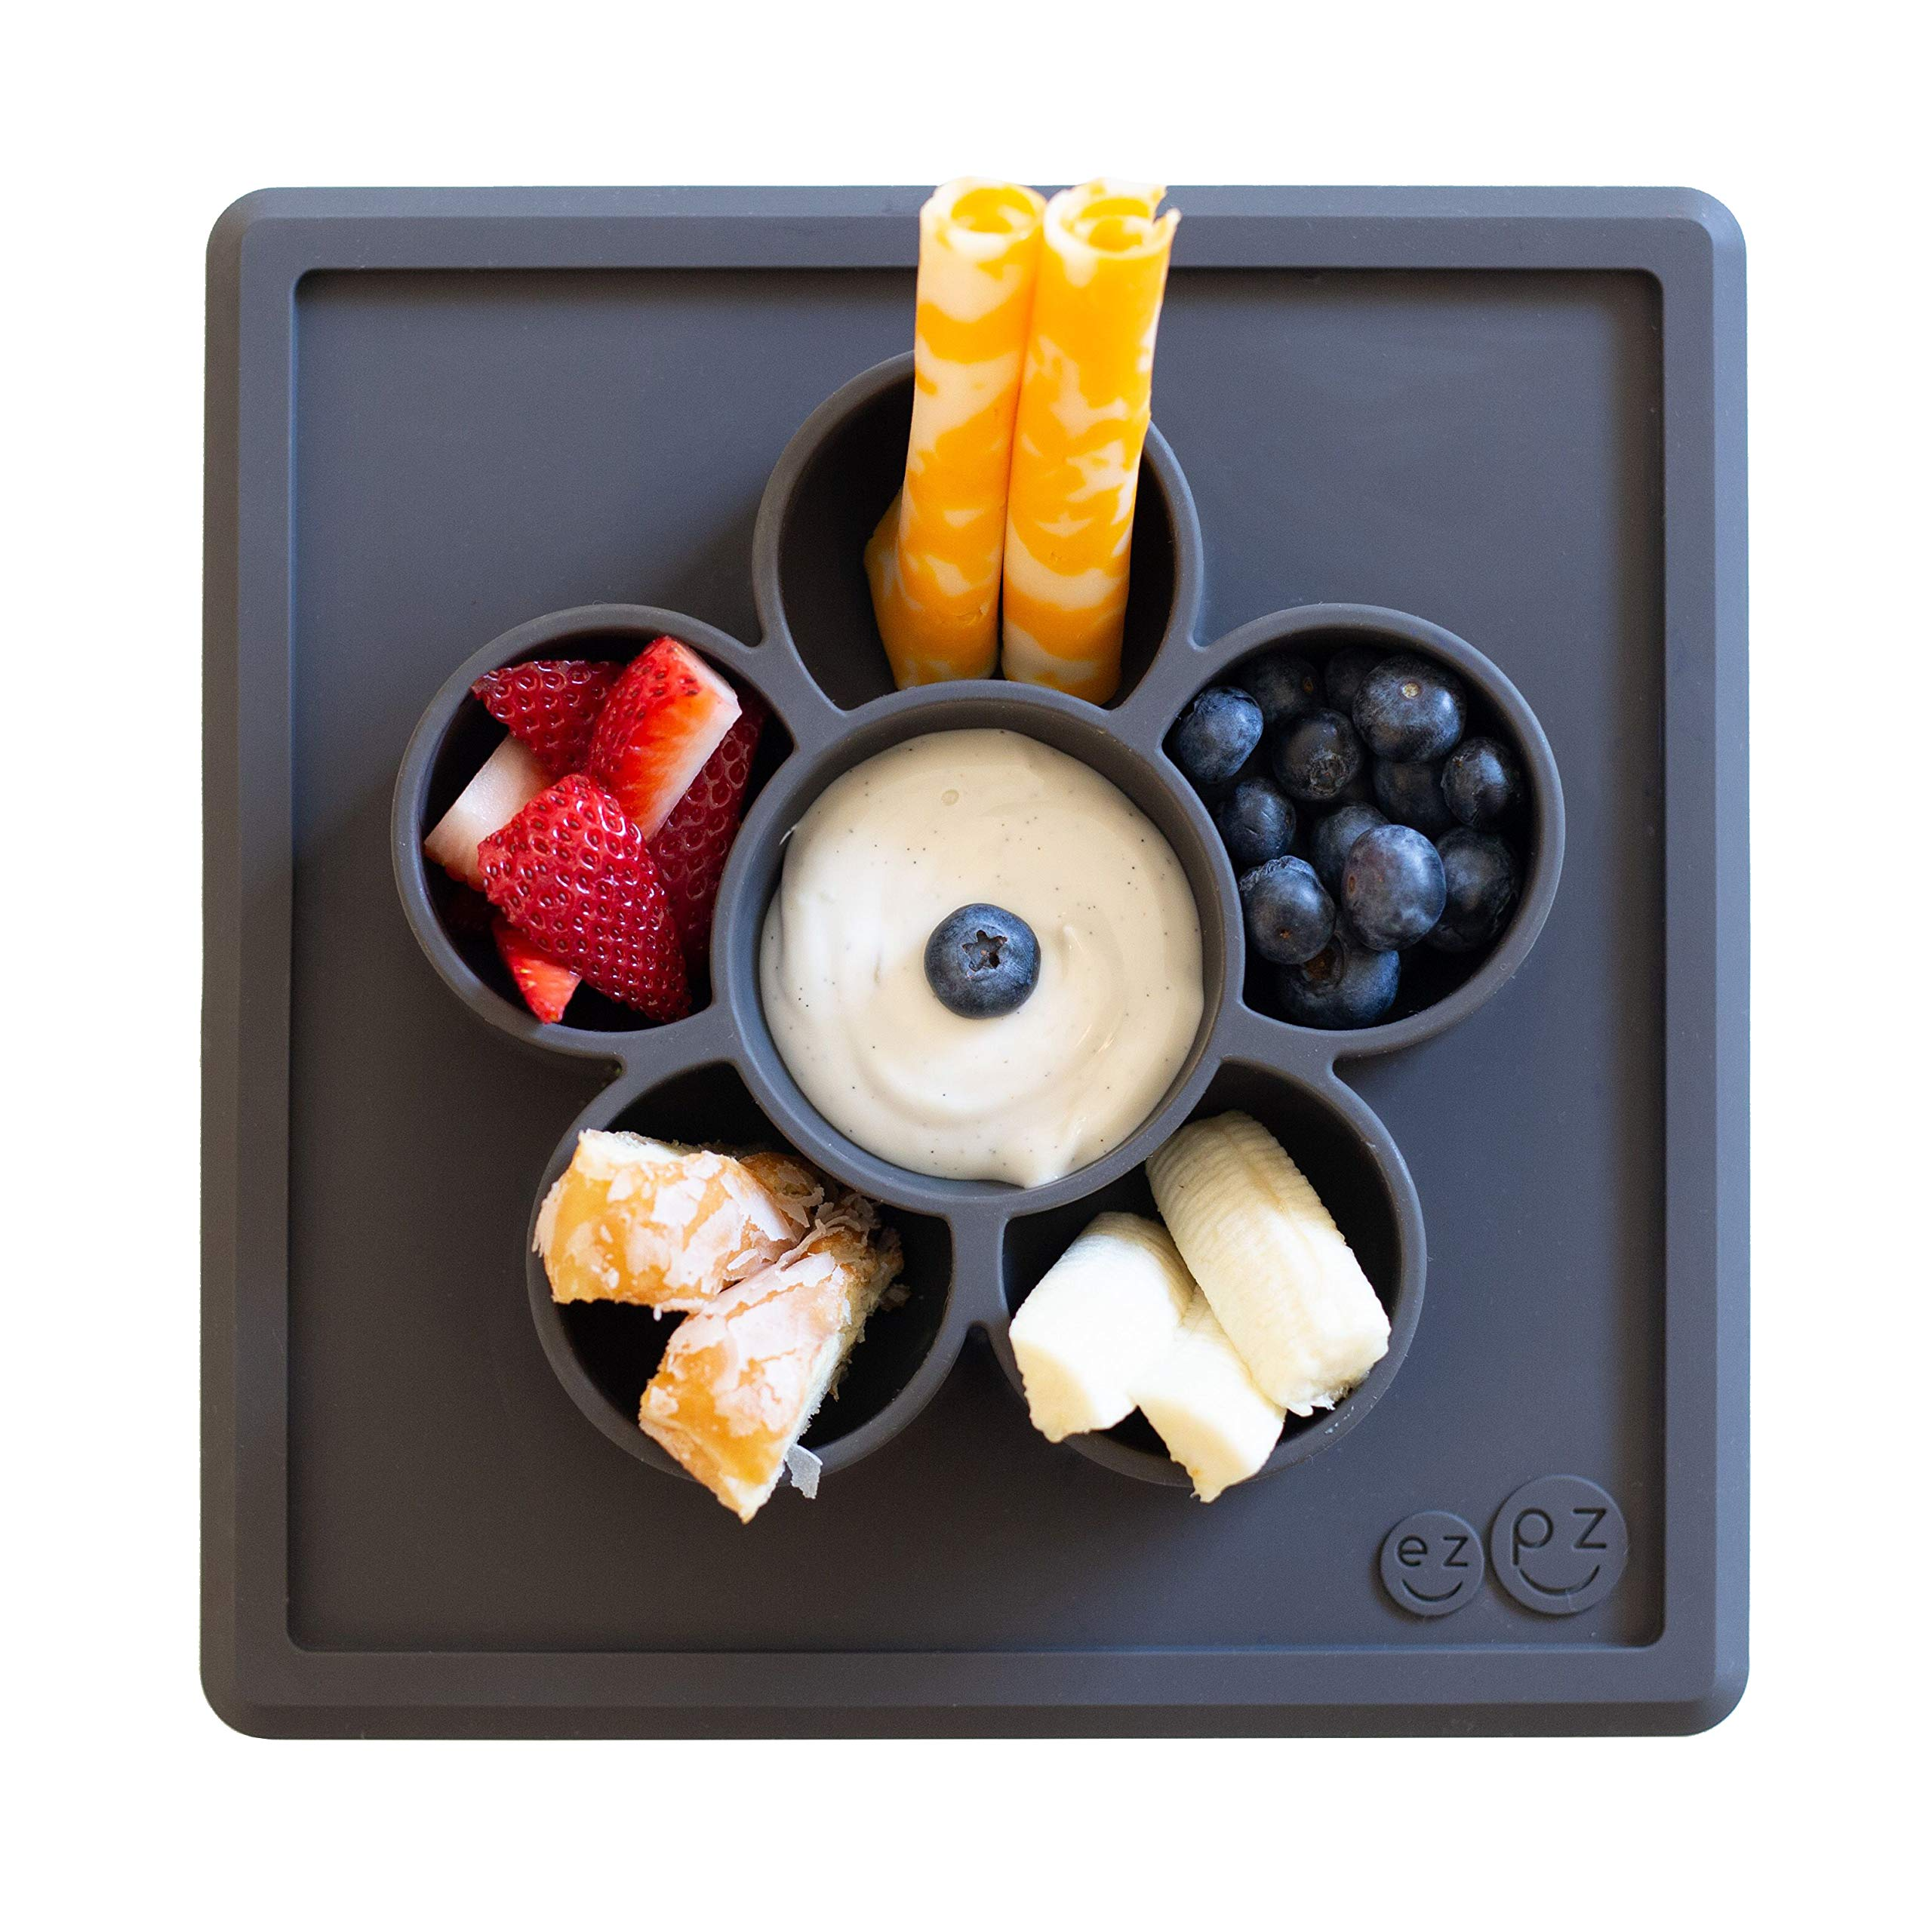 ezpz Mini Play Mat - One-Piece Silicone placemat + Flower compartments (Slate) by ezpz